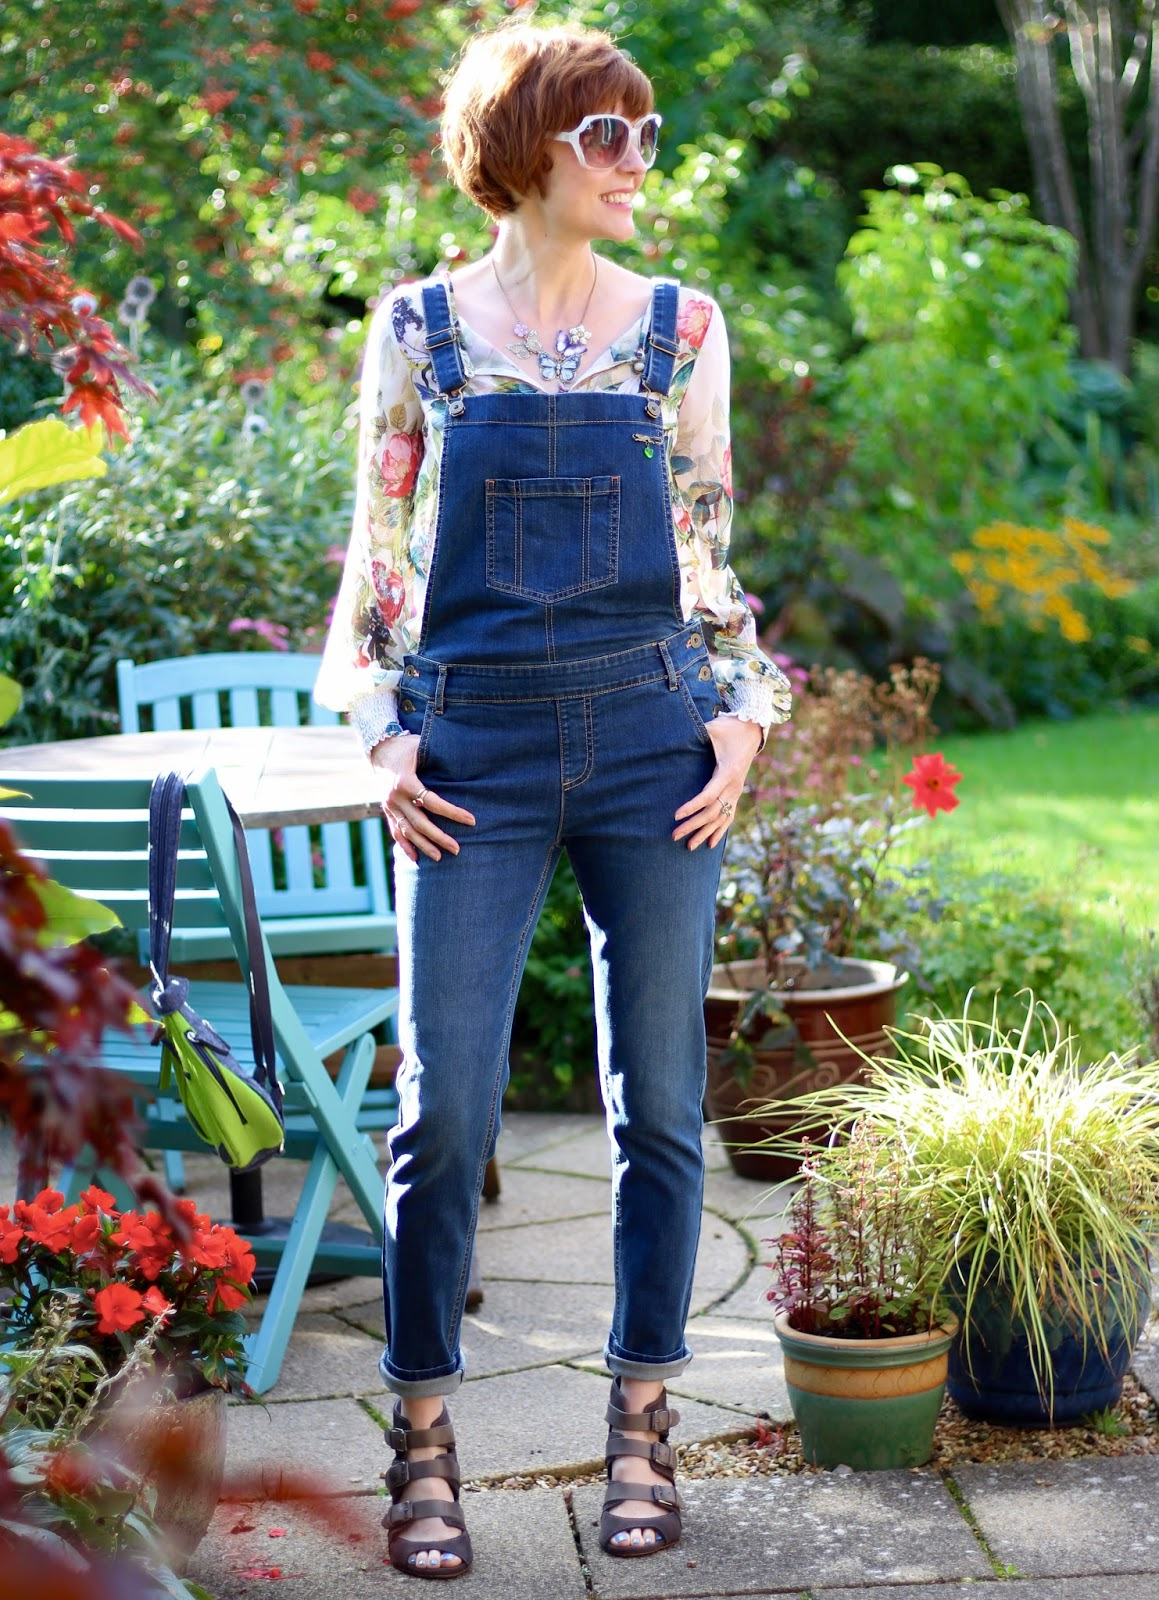 Fake Fabulous | Blue denim dungarees, floral chiffon blouse, buckle strap sandals... over 40!